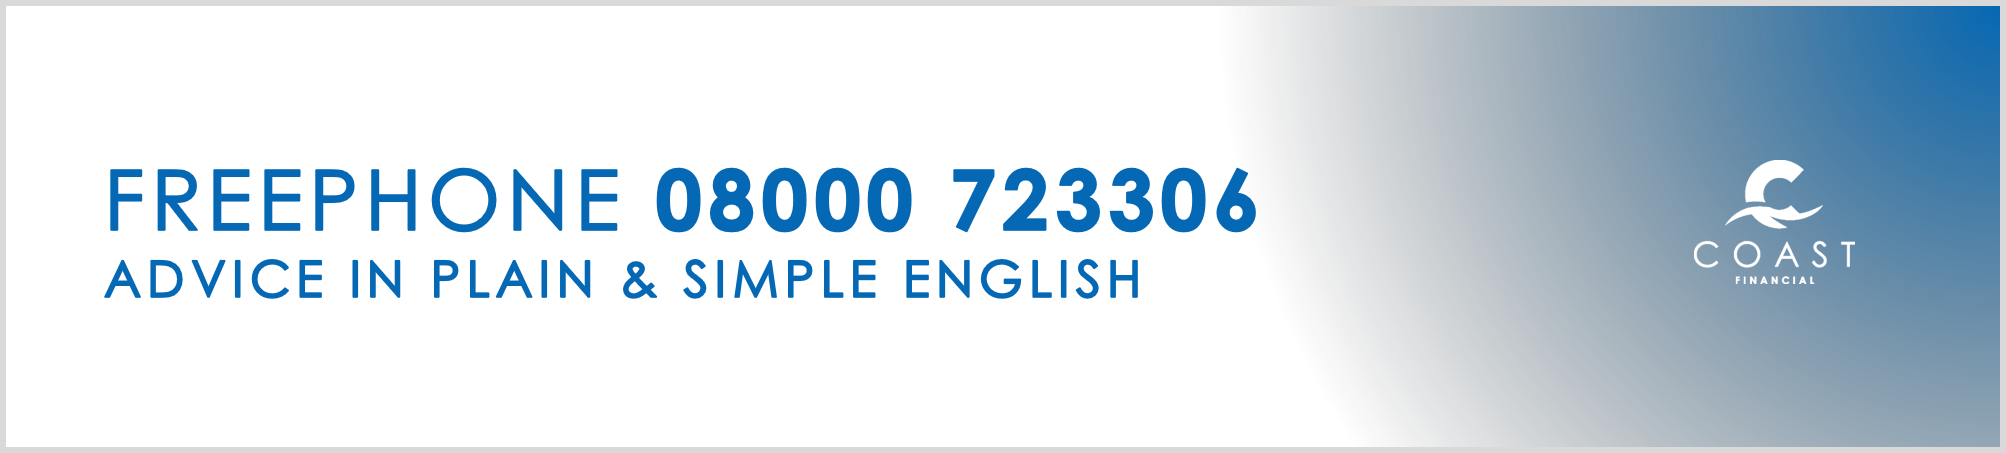 Free Phone Banner Sample - Coast Financial UK